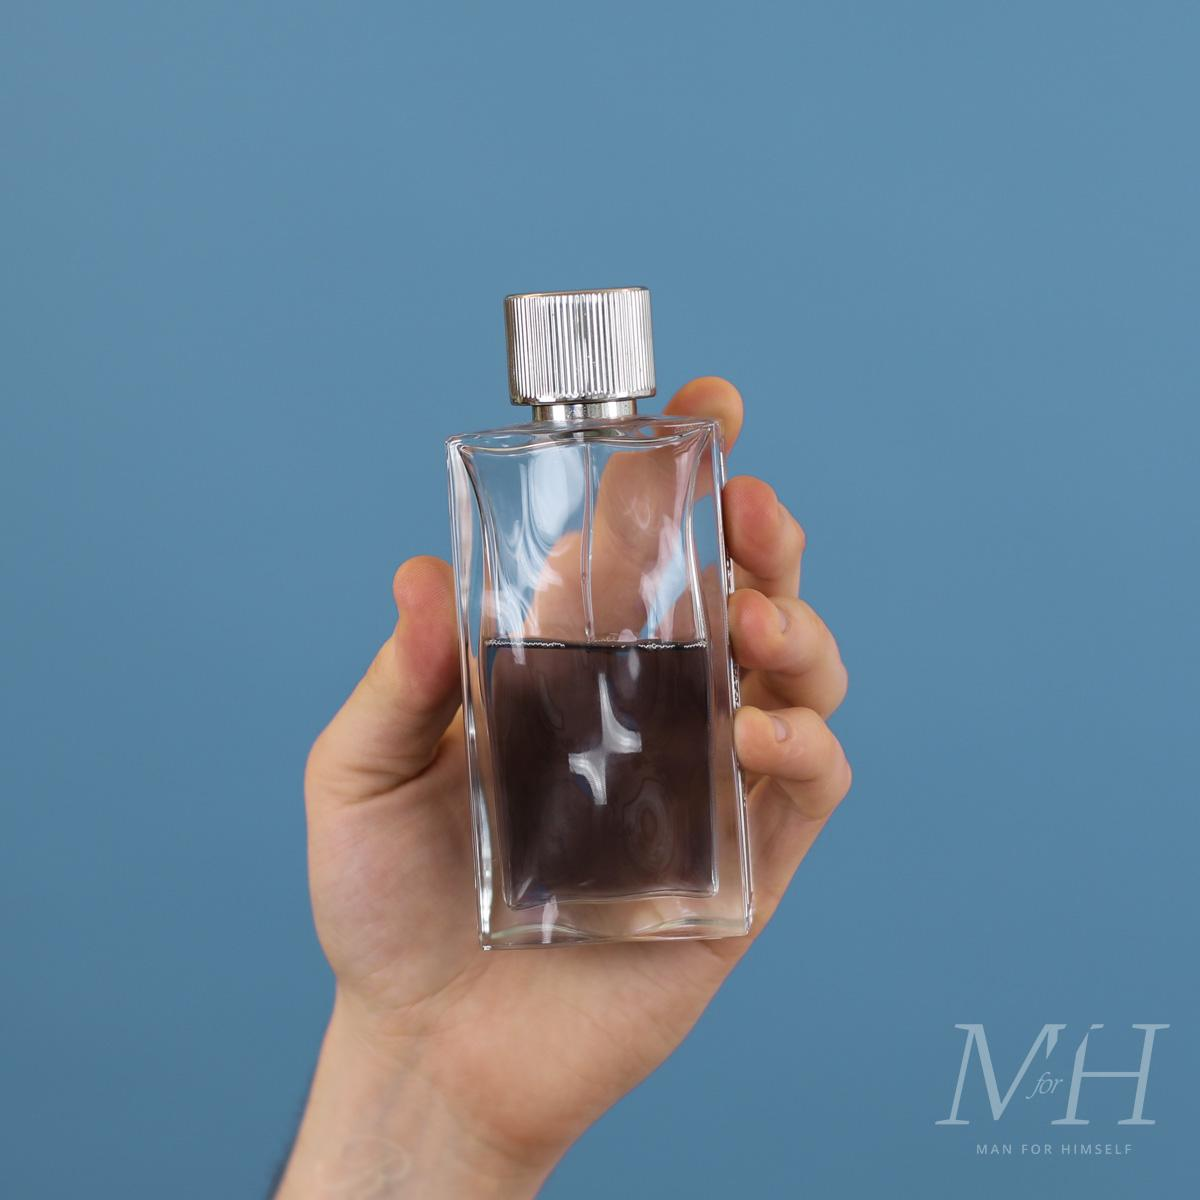 abercrombie-and-fitch-first-instinct-fragrance-product-man-for-himself